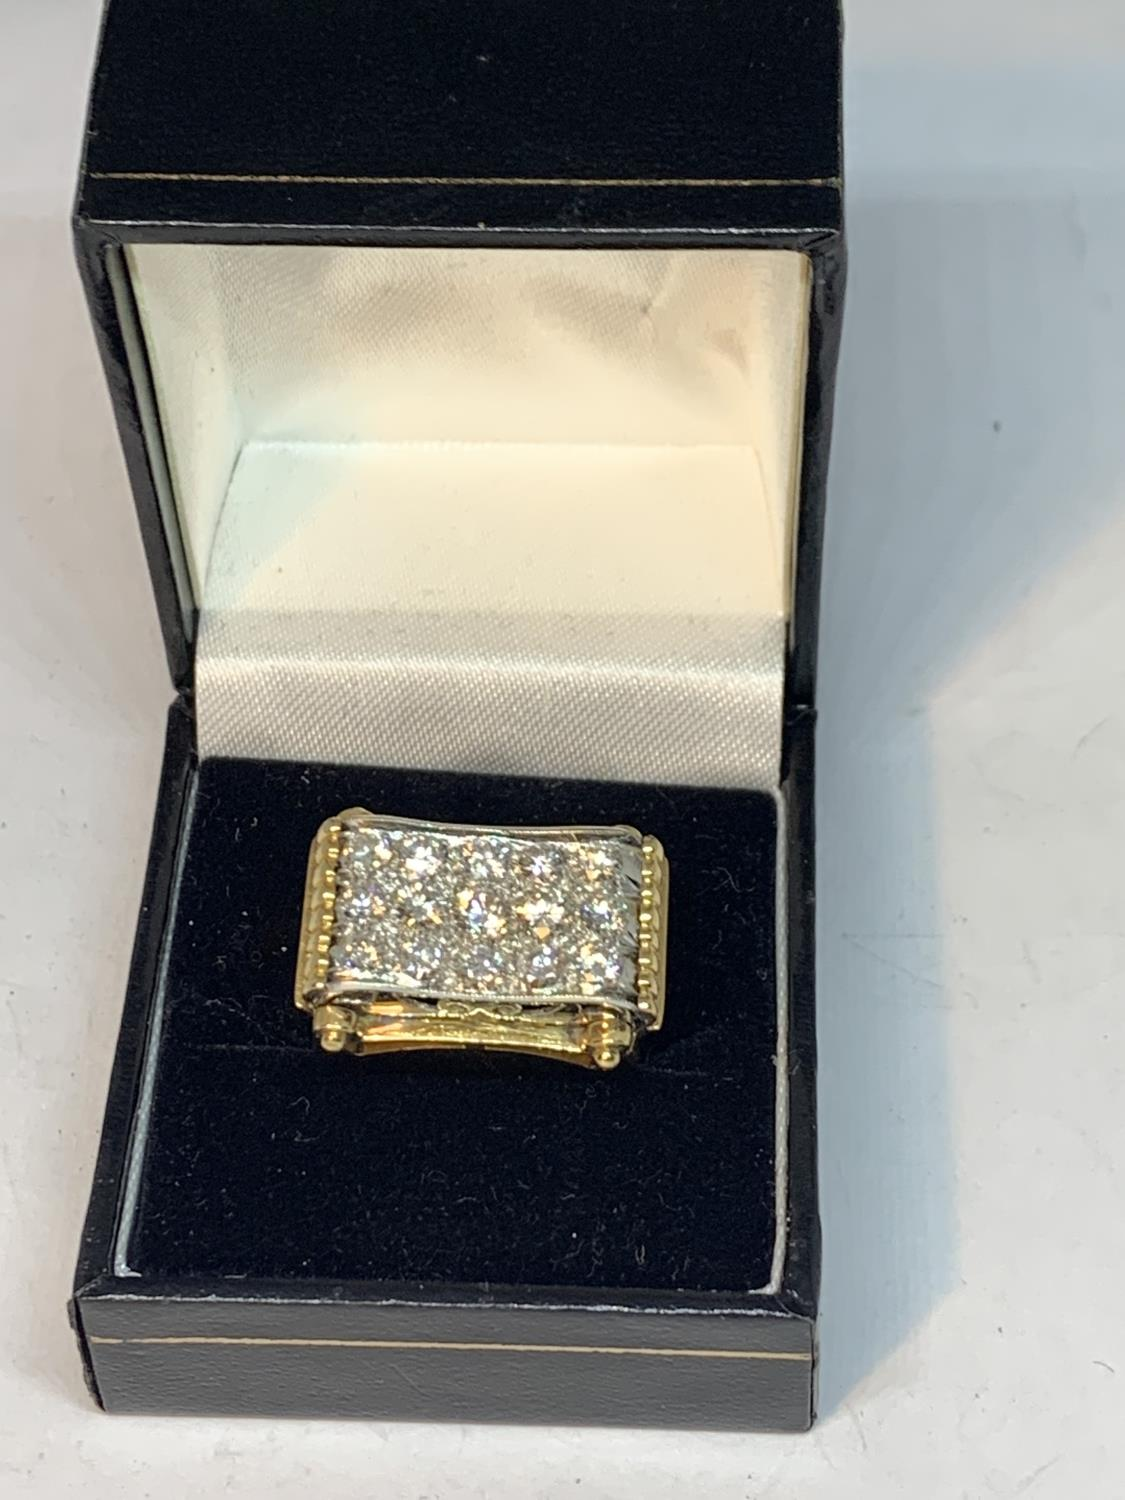 A HEAVY 18 CARAT GOLD RING WITH FIFTEEN DIAMONDS SET IN A RECTANGLE OF DIAMOND CHIPS GROSS WEIGHT 13 - Image 2 of 10